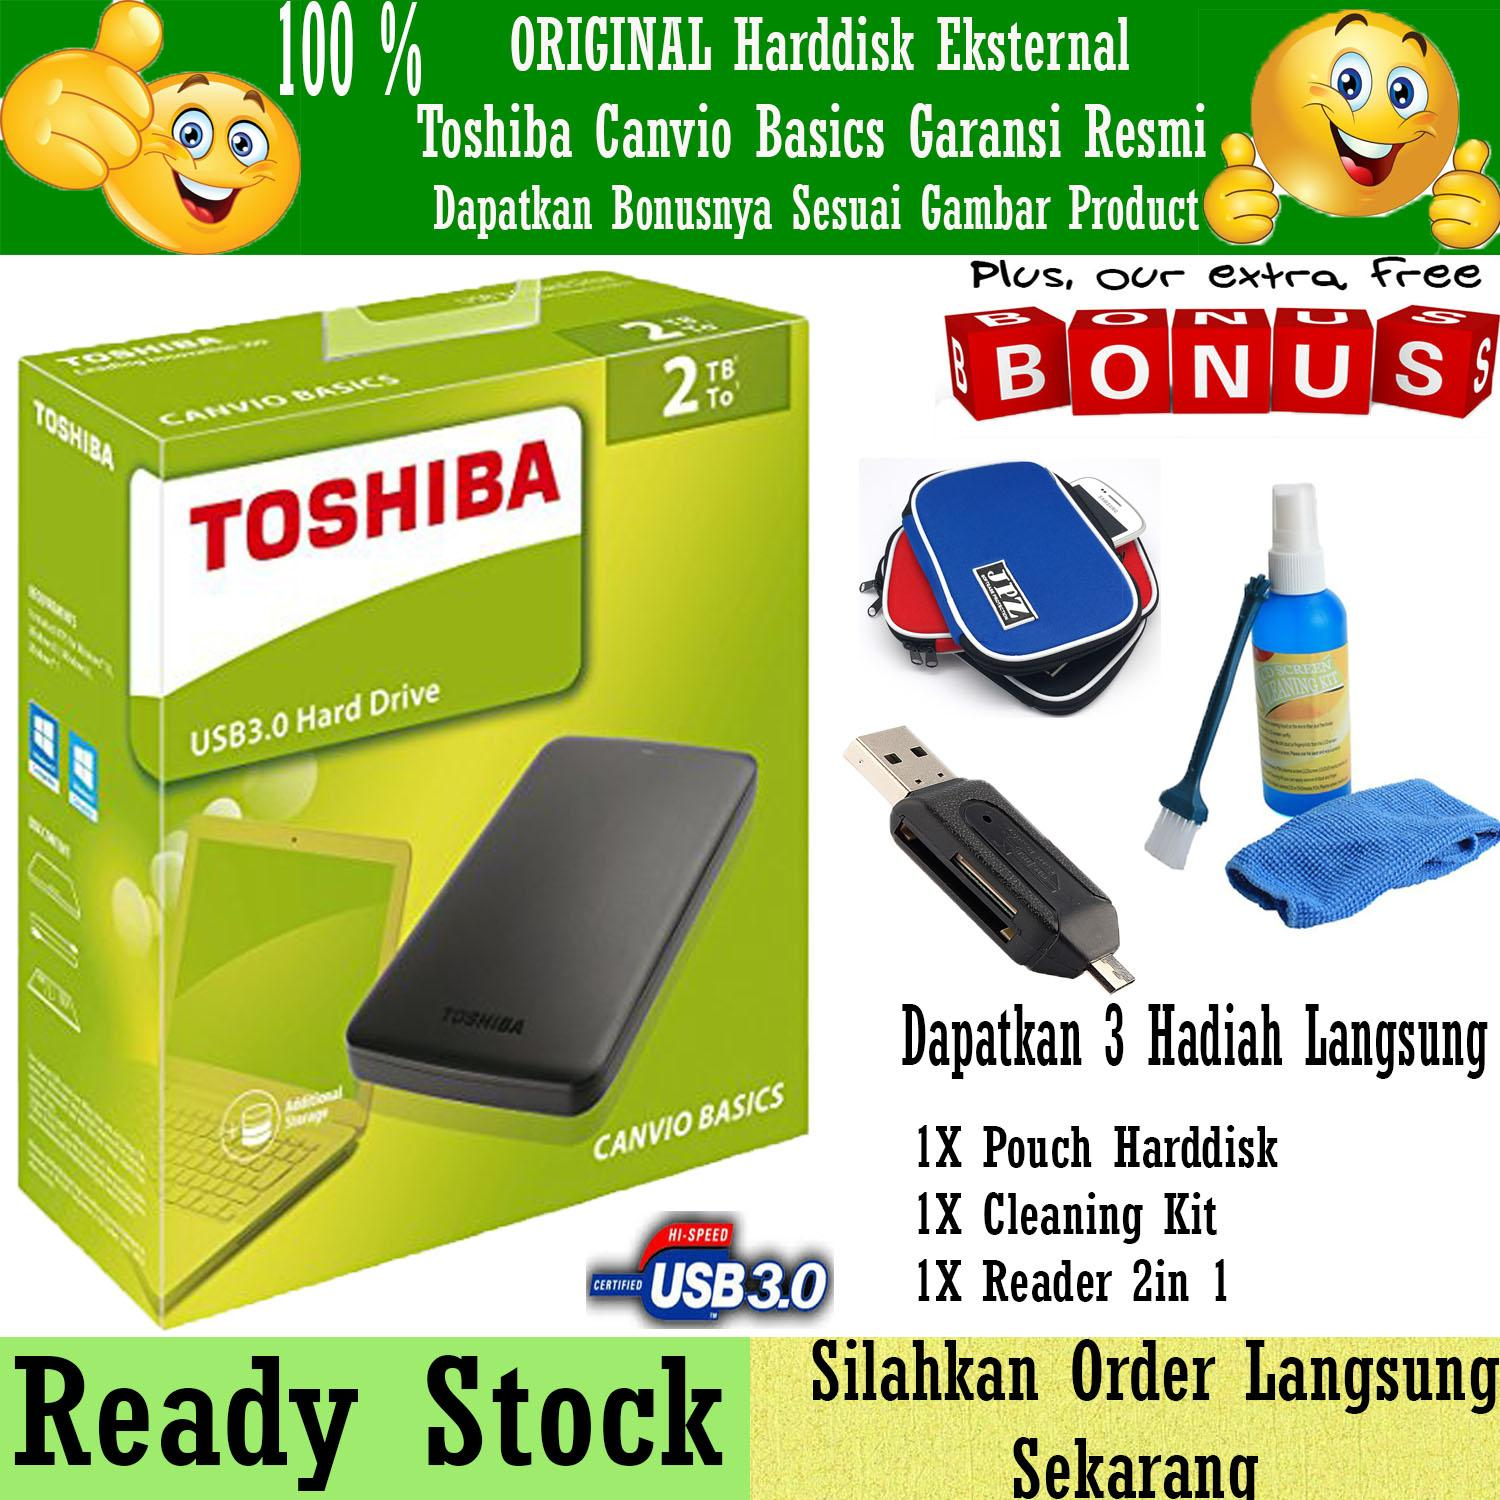 Toshiba Canvio Basic 2TB - HDD / HD / Hardisk Eksternal - Hitam + Gratis Pouch Harddisk + Cleaning Kit ( Pembersih PC & Notebook ) + Reader 2in 1